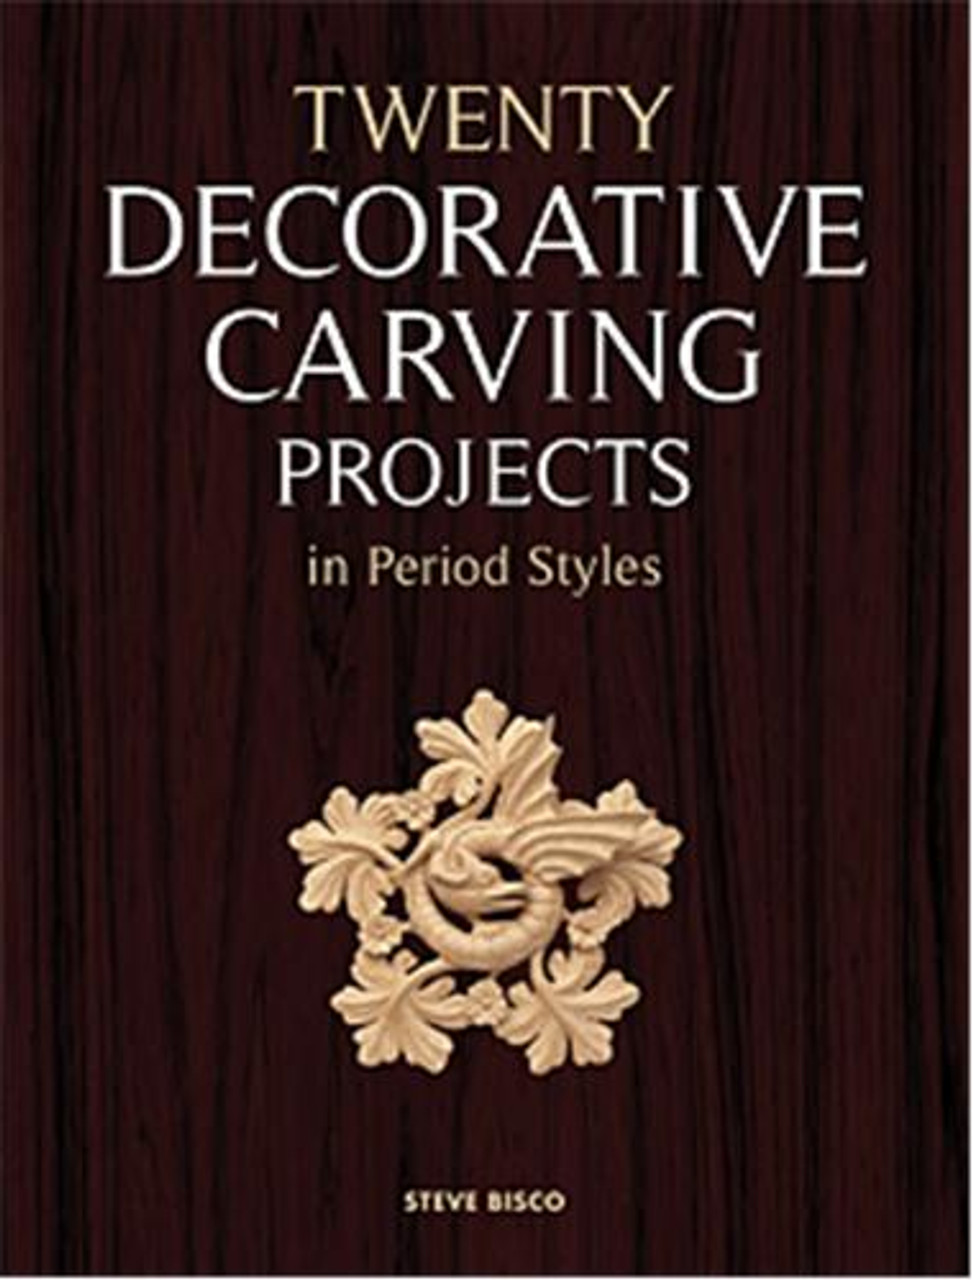 Fox Chapel Publishing Decorative Carving Projects